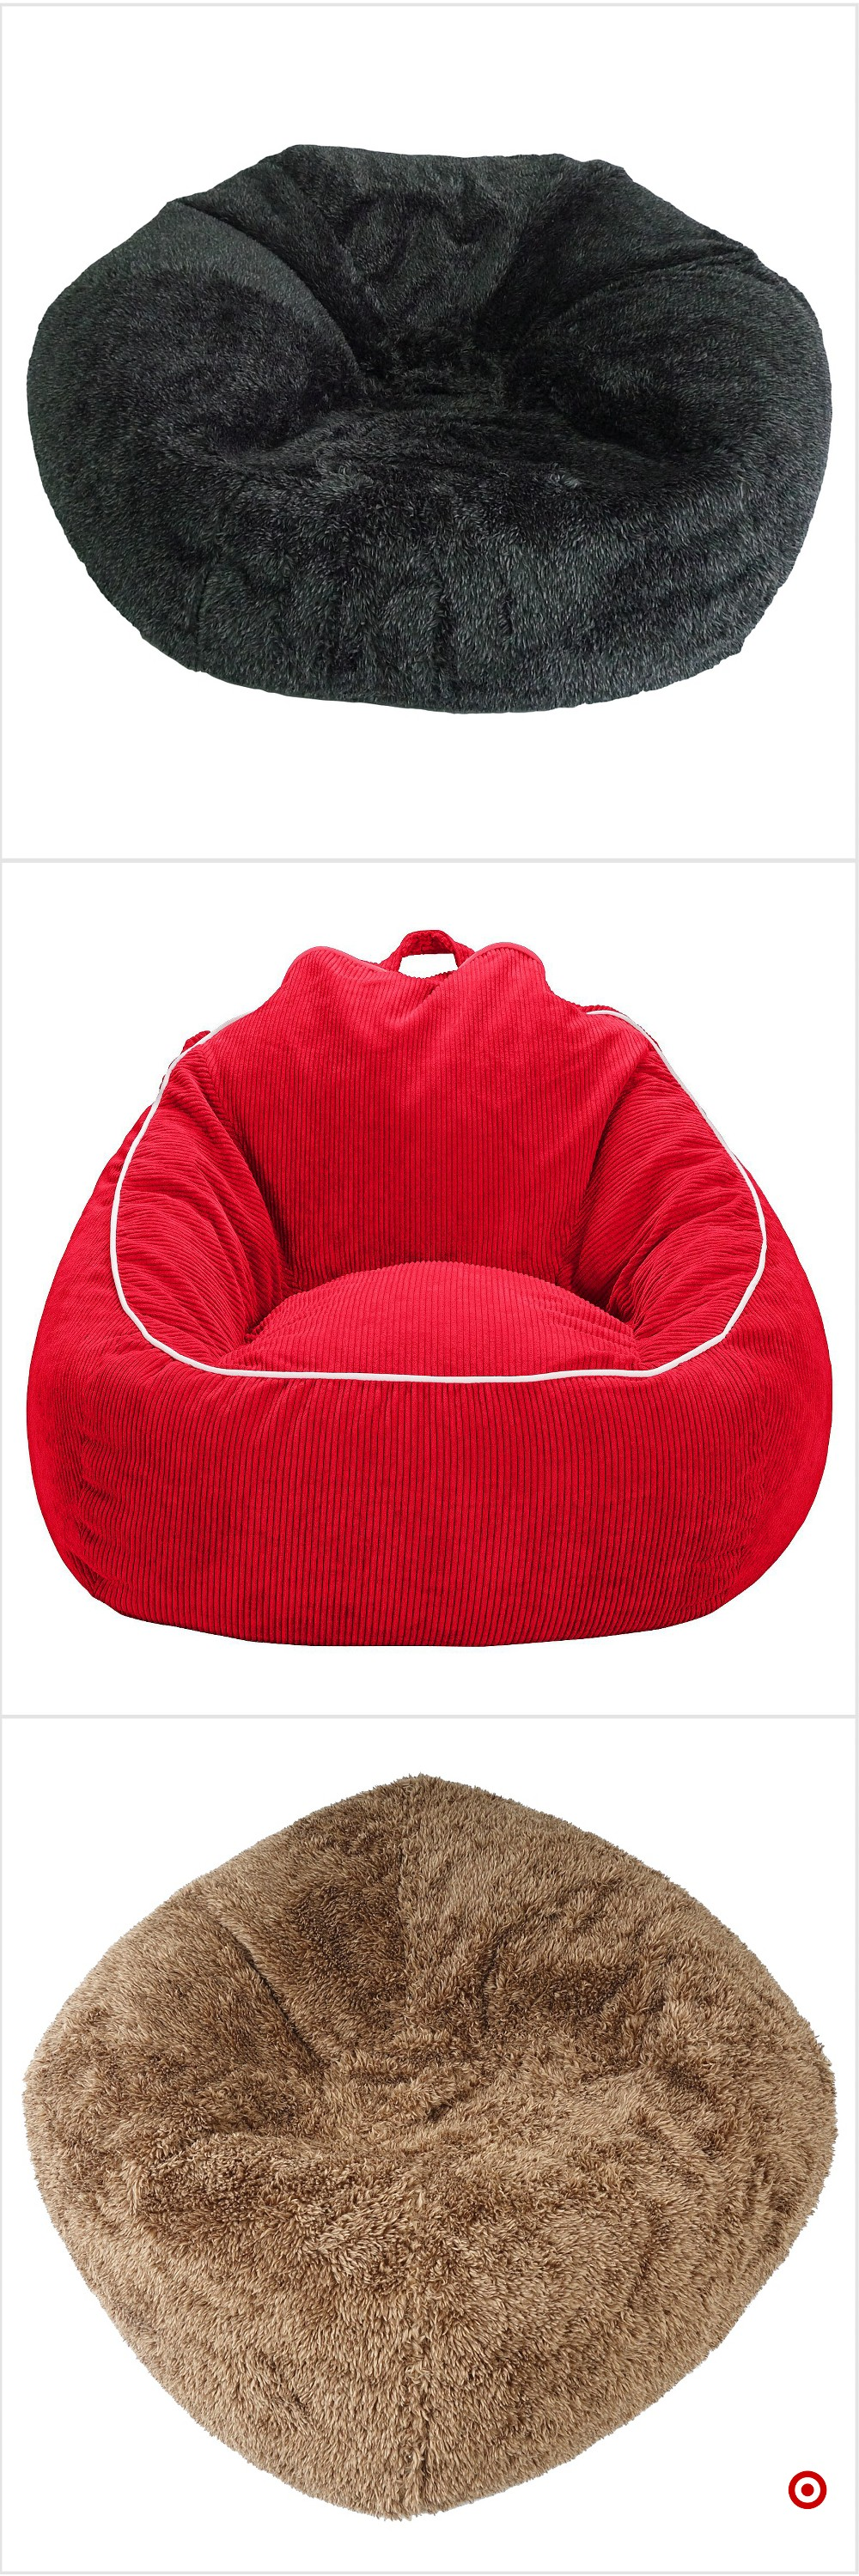 Shop Target For Bean Bag Chair You Will Love At Great Low